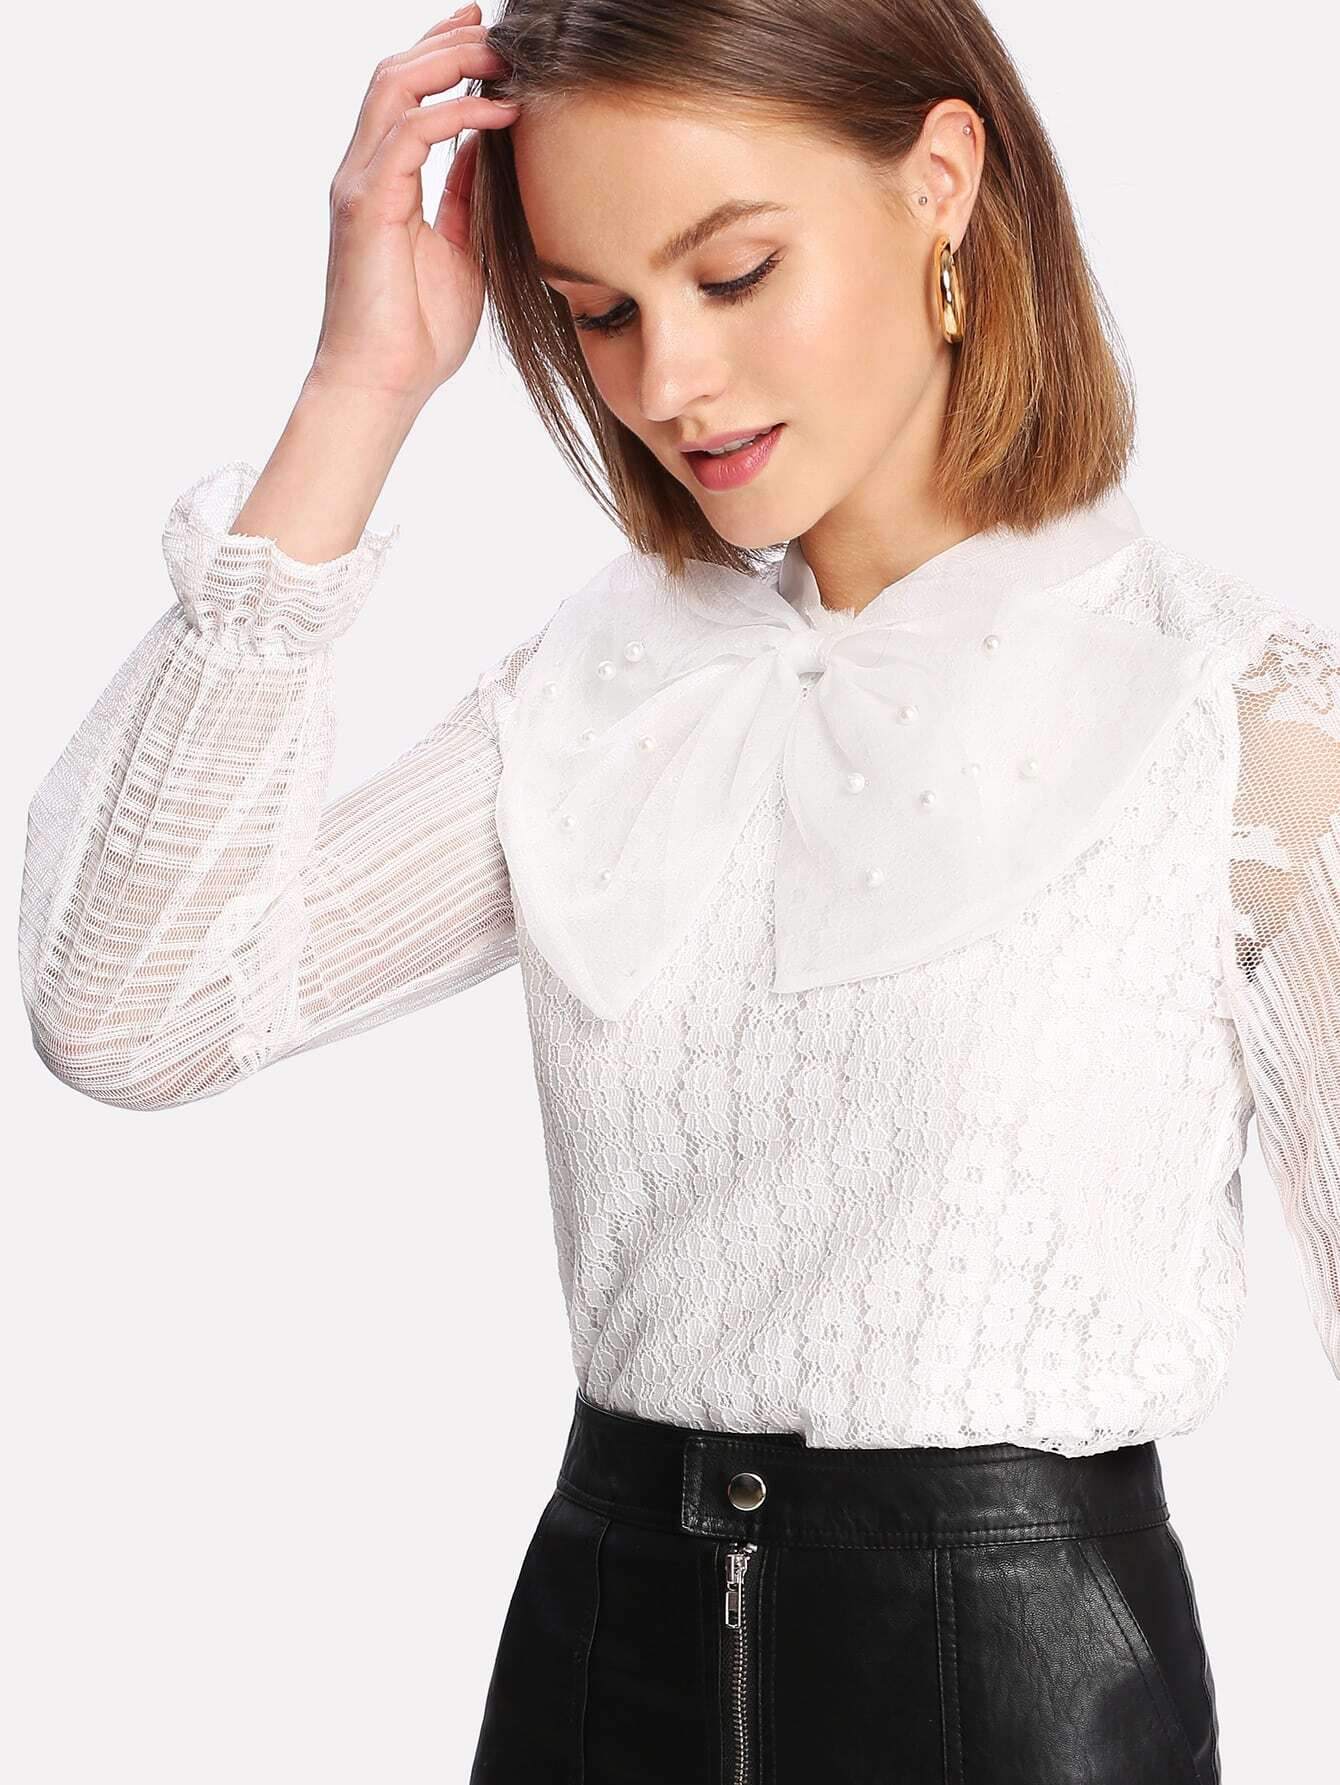 Pearl Beaded Detail Lace Overlay Blouse pearl and layered lace detail pullover